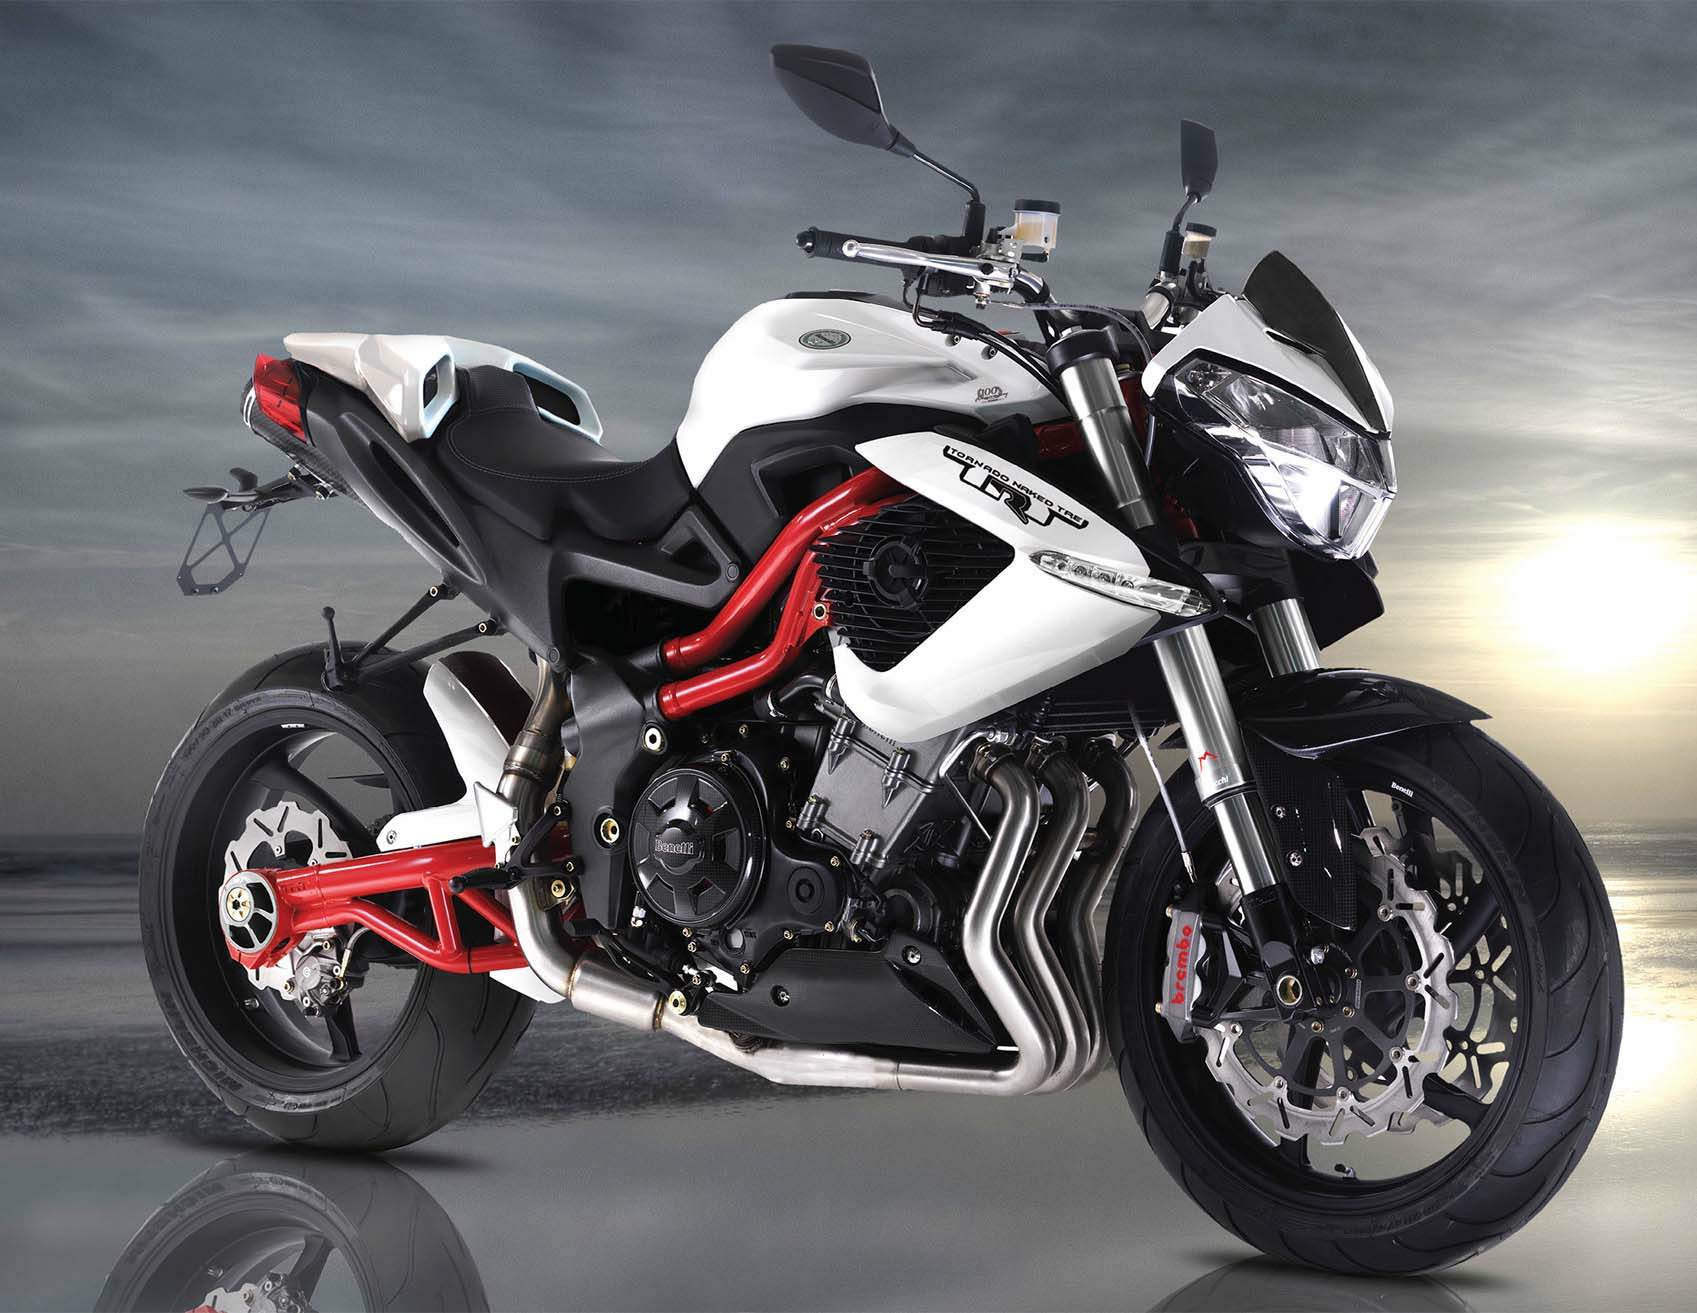 BENELLI TNT 899 Century Racers Limited Edition specs